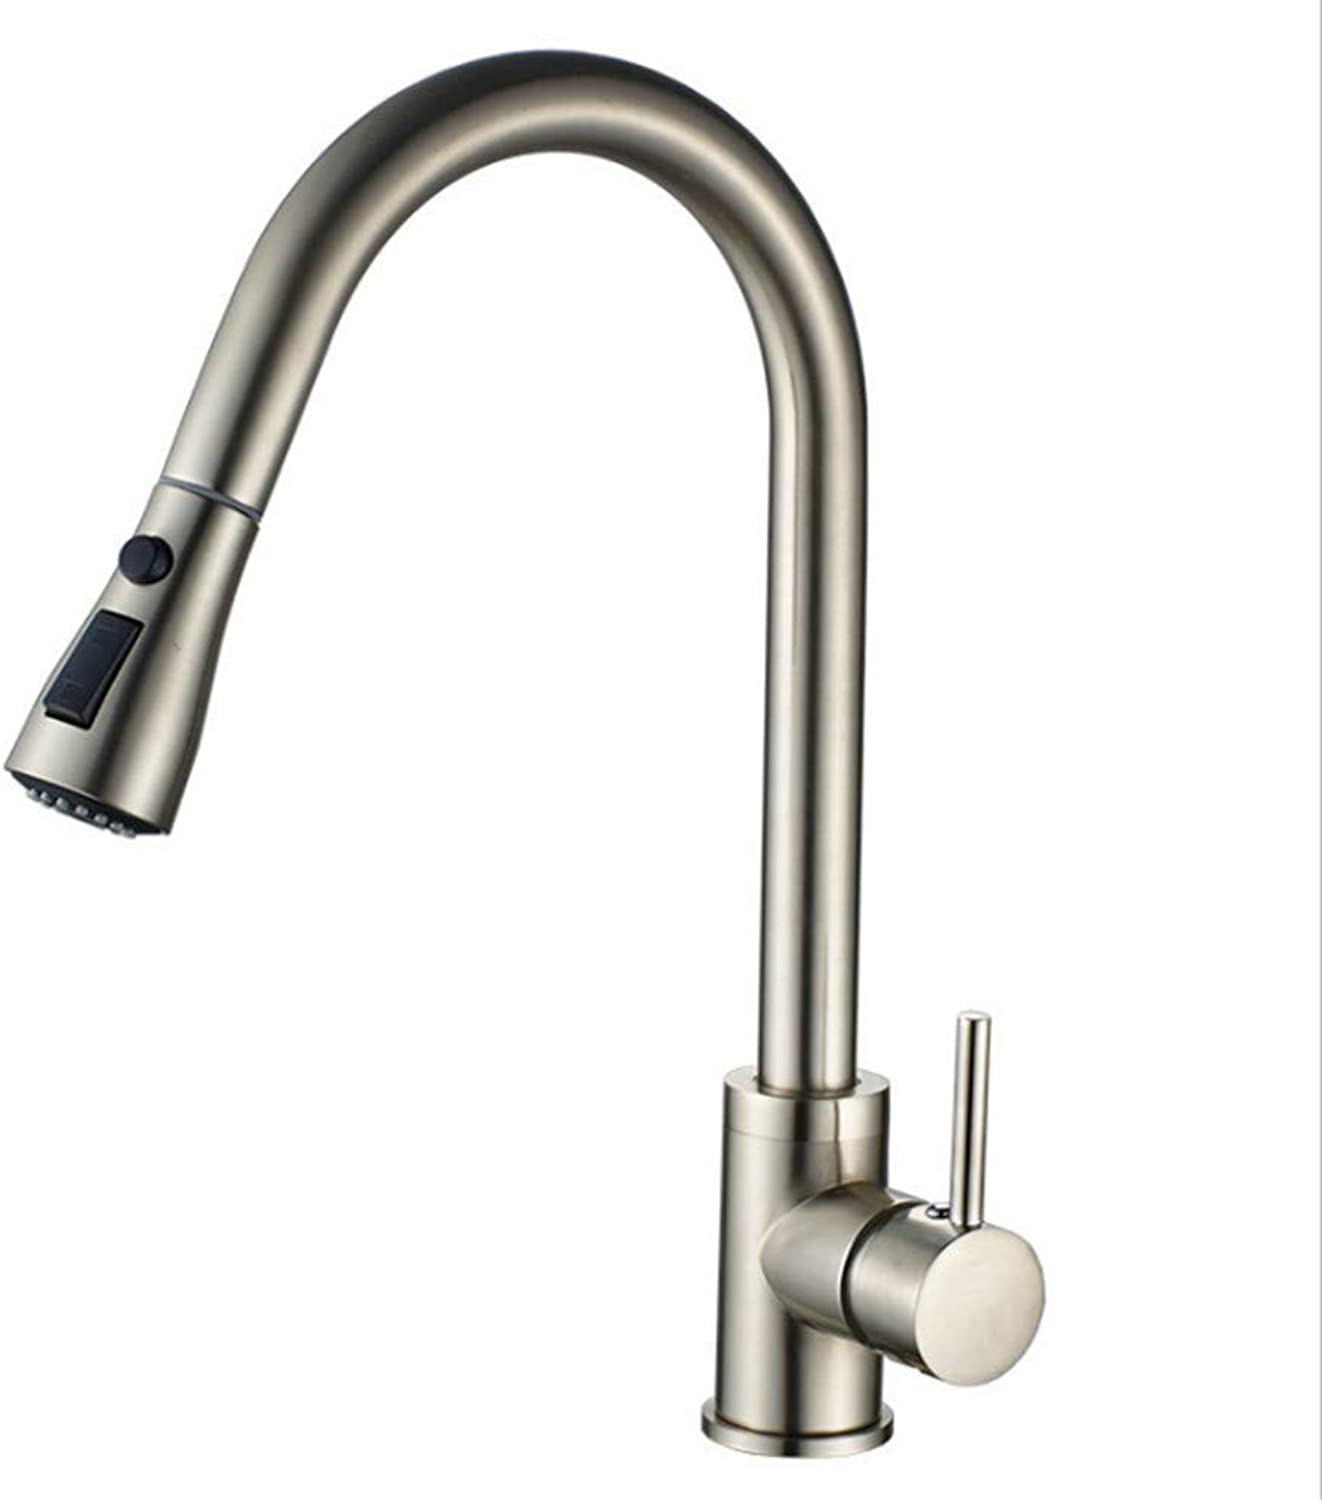 Kitchen Sink Taps Bathroom Taps Copper Kitchen Faucet Drawing Cold and Hot Water Washing Basin Flume Sitting redation